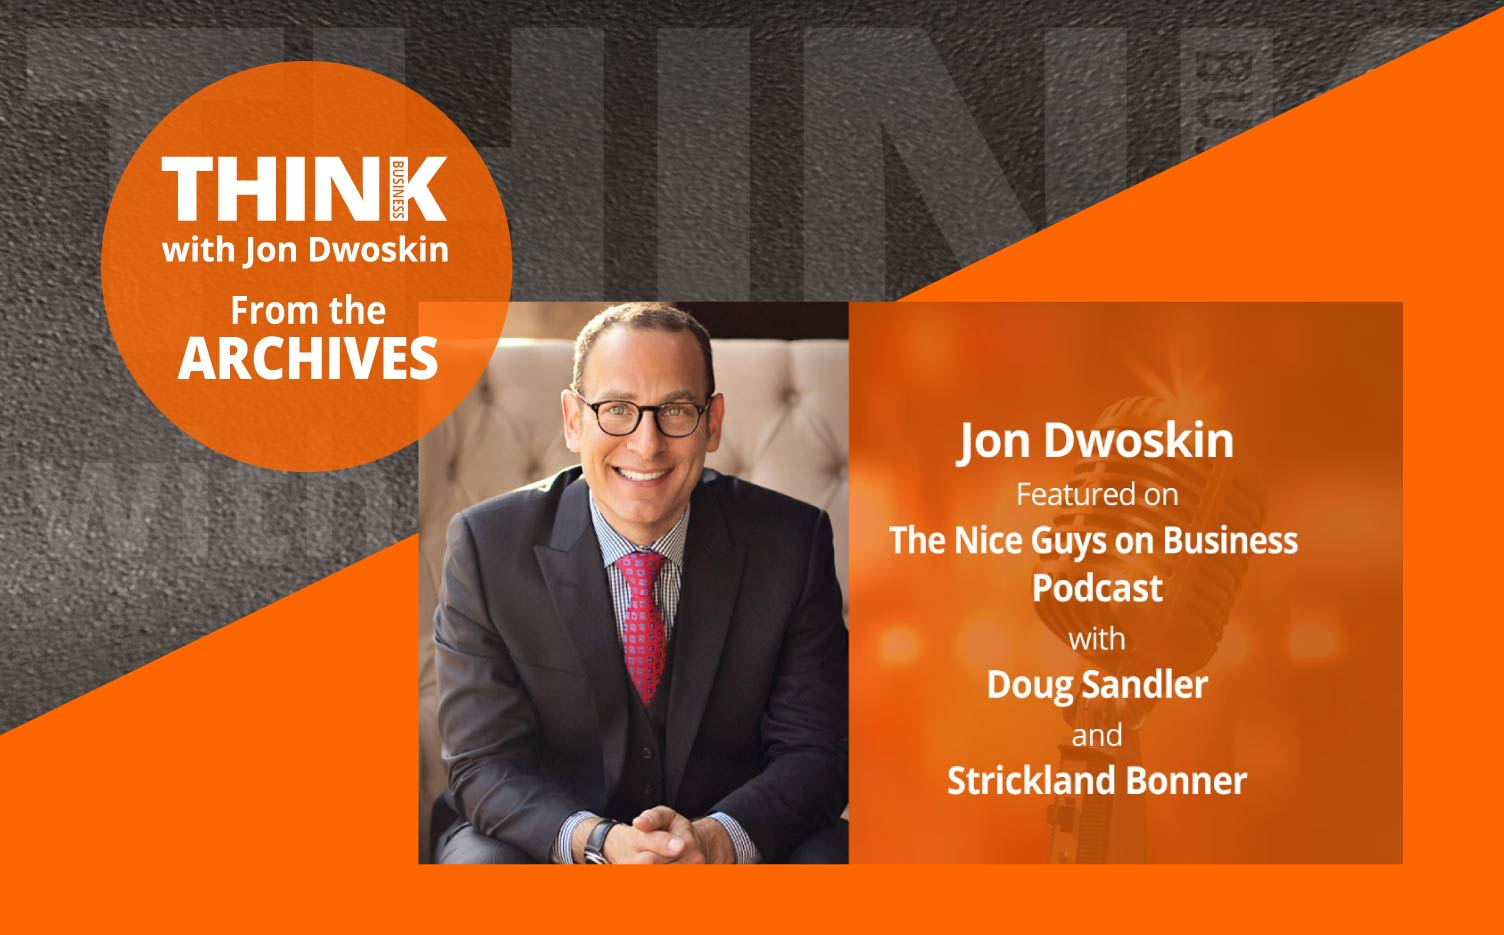 THINK Business Podcast: Nice Guys on Business with Jon Dwoskin